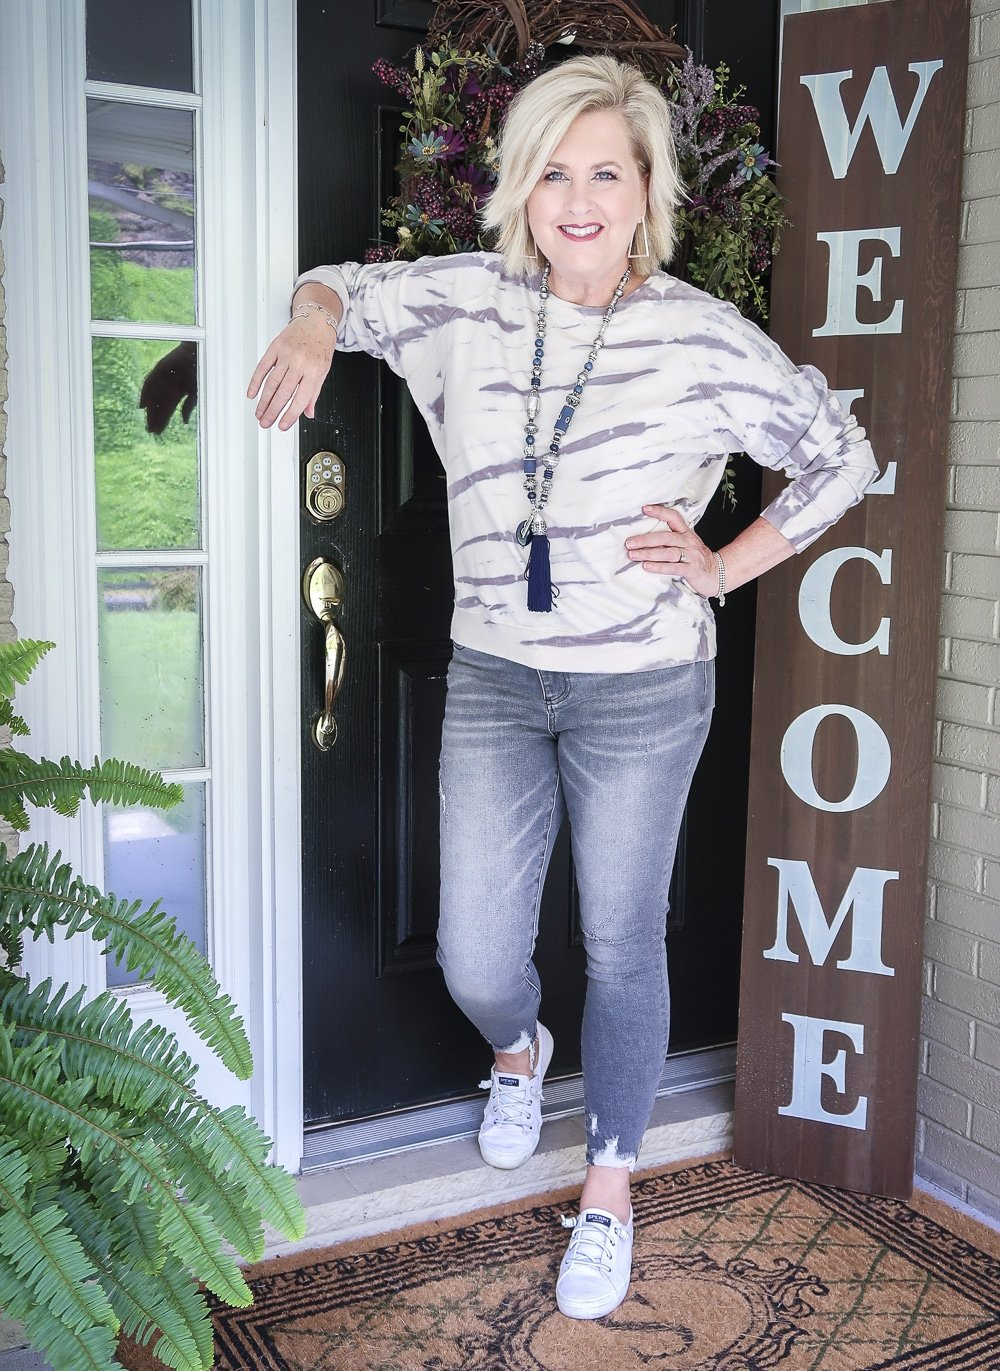 Fashion Blogger 50 Is Not Old is leaning on a door and wearing a tie-dye sweatshirt with a pair of washed gray jeans from Kut From The Kloth with Sperry Crest Vibe sneakers